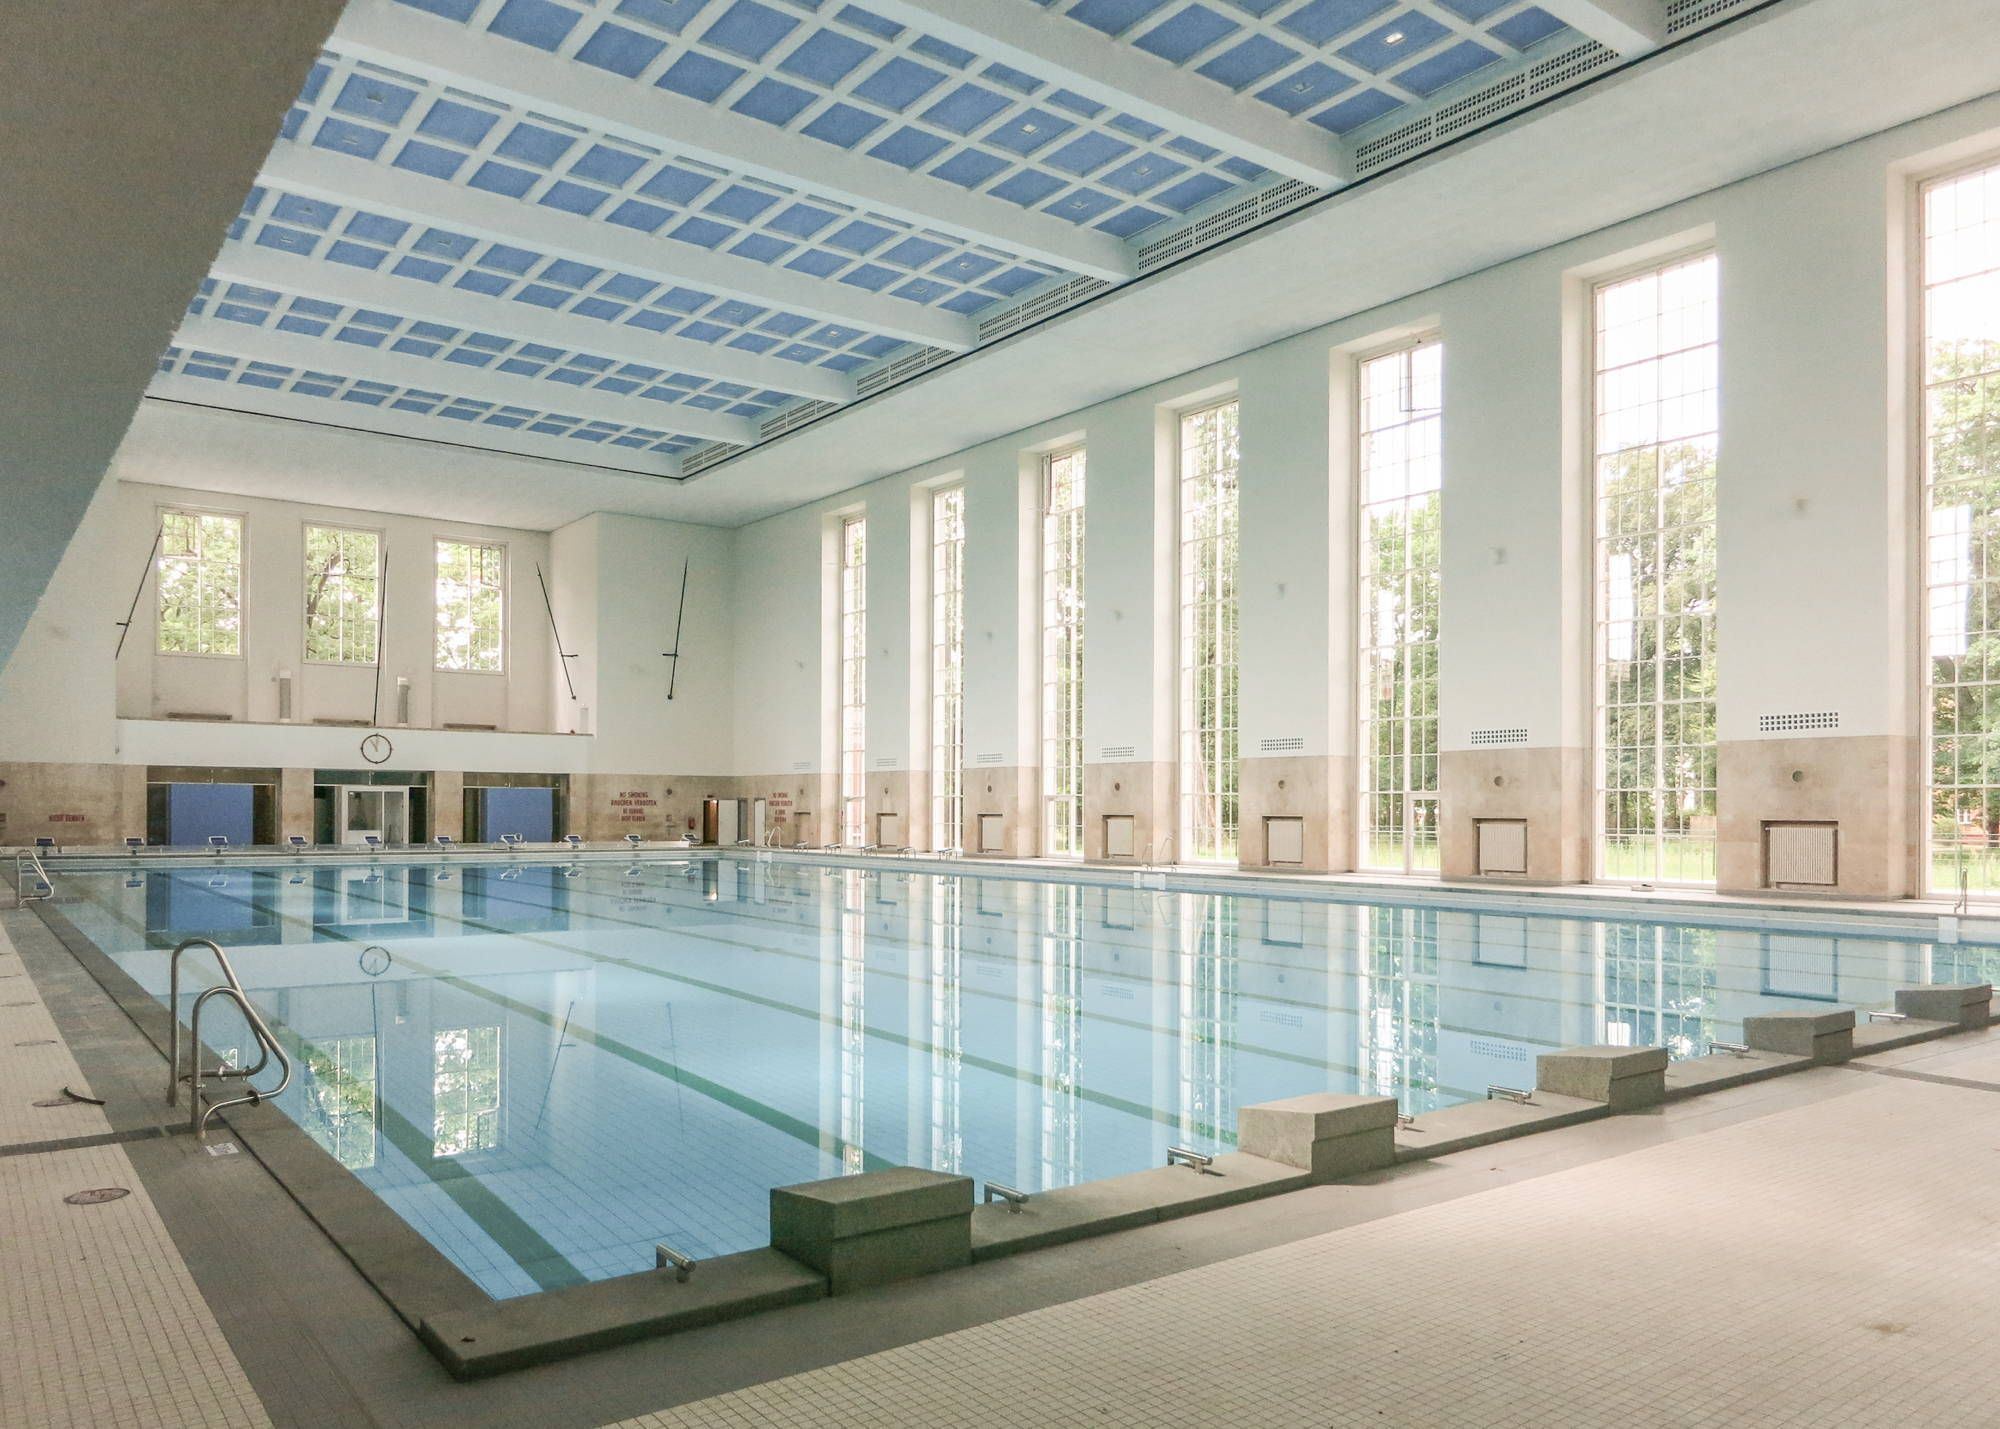 Historic swimming pool for the Finckensteinallee in Berlin graph © Tobias Reckert Berlin